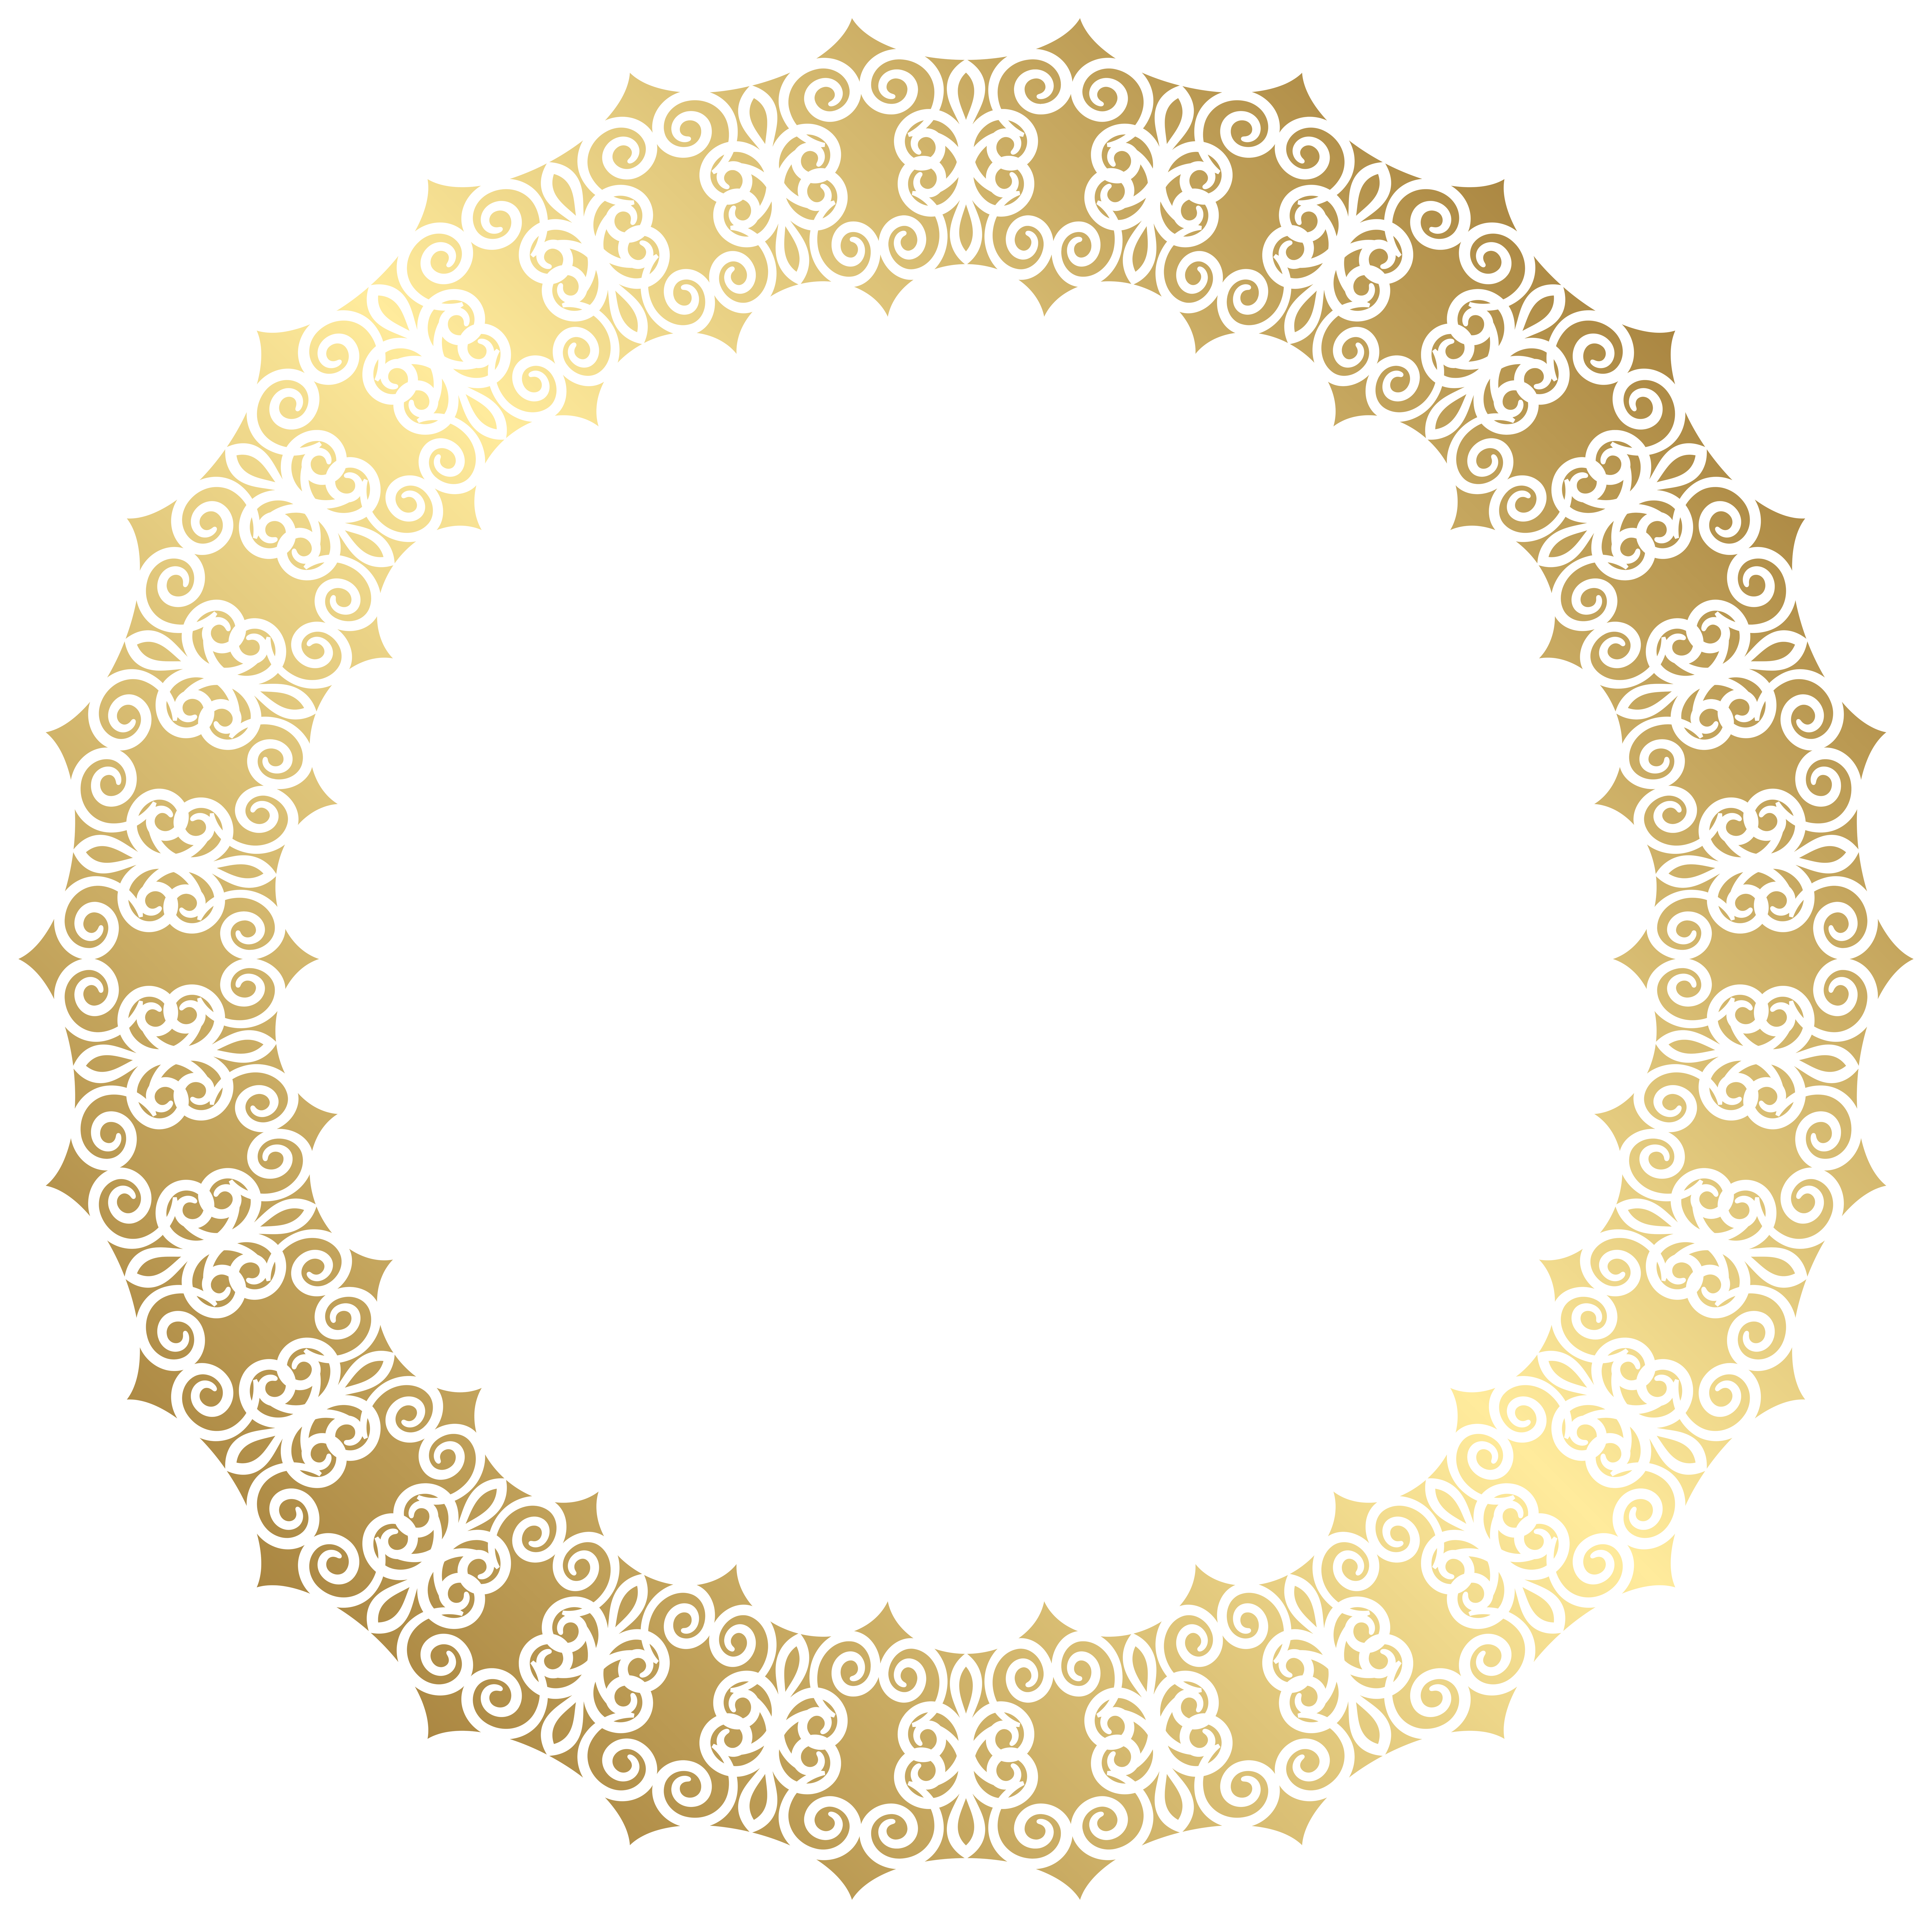 Round border transparent clip. Gold clipart doily